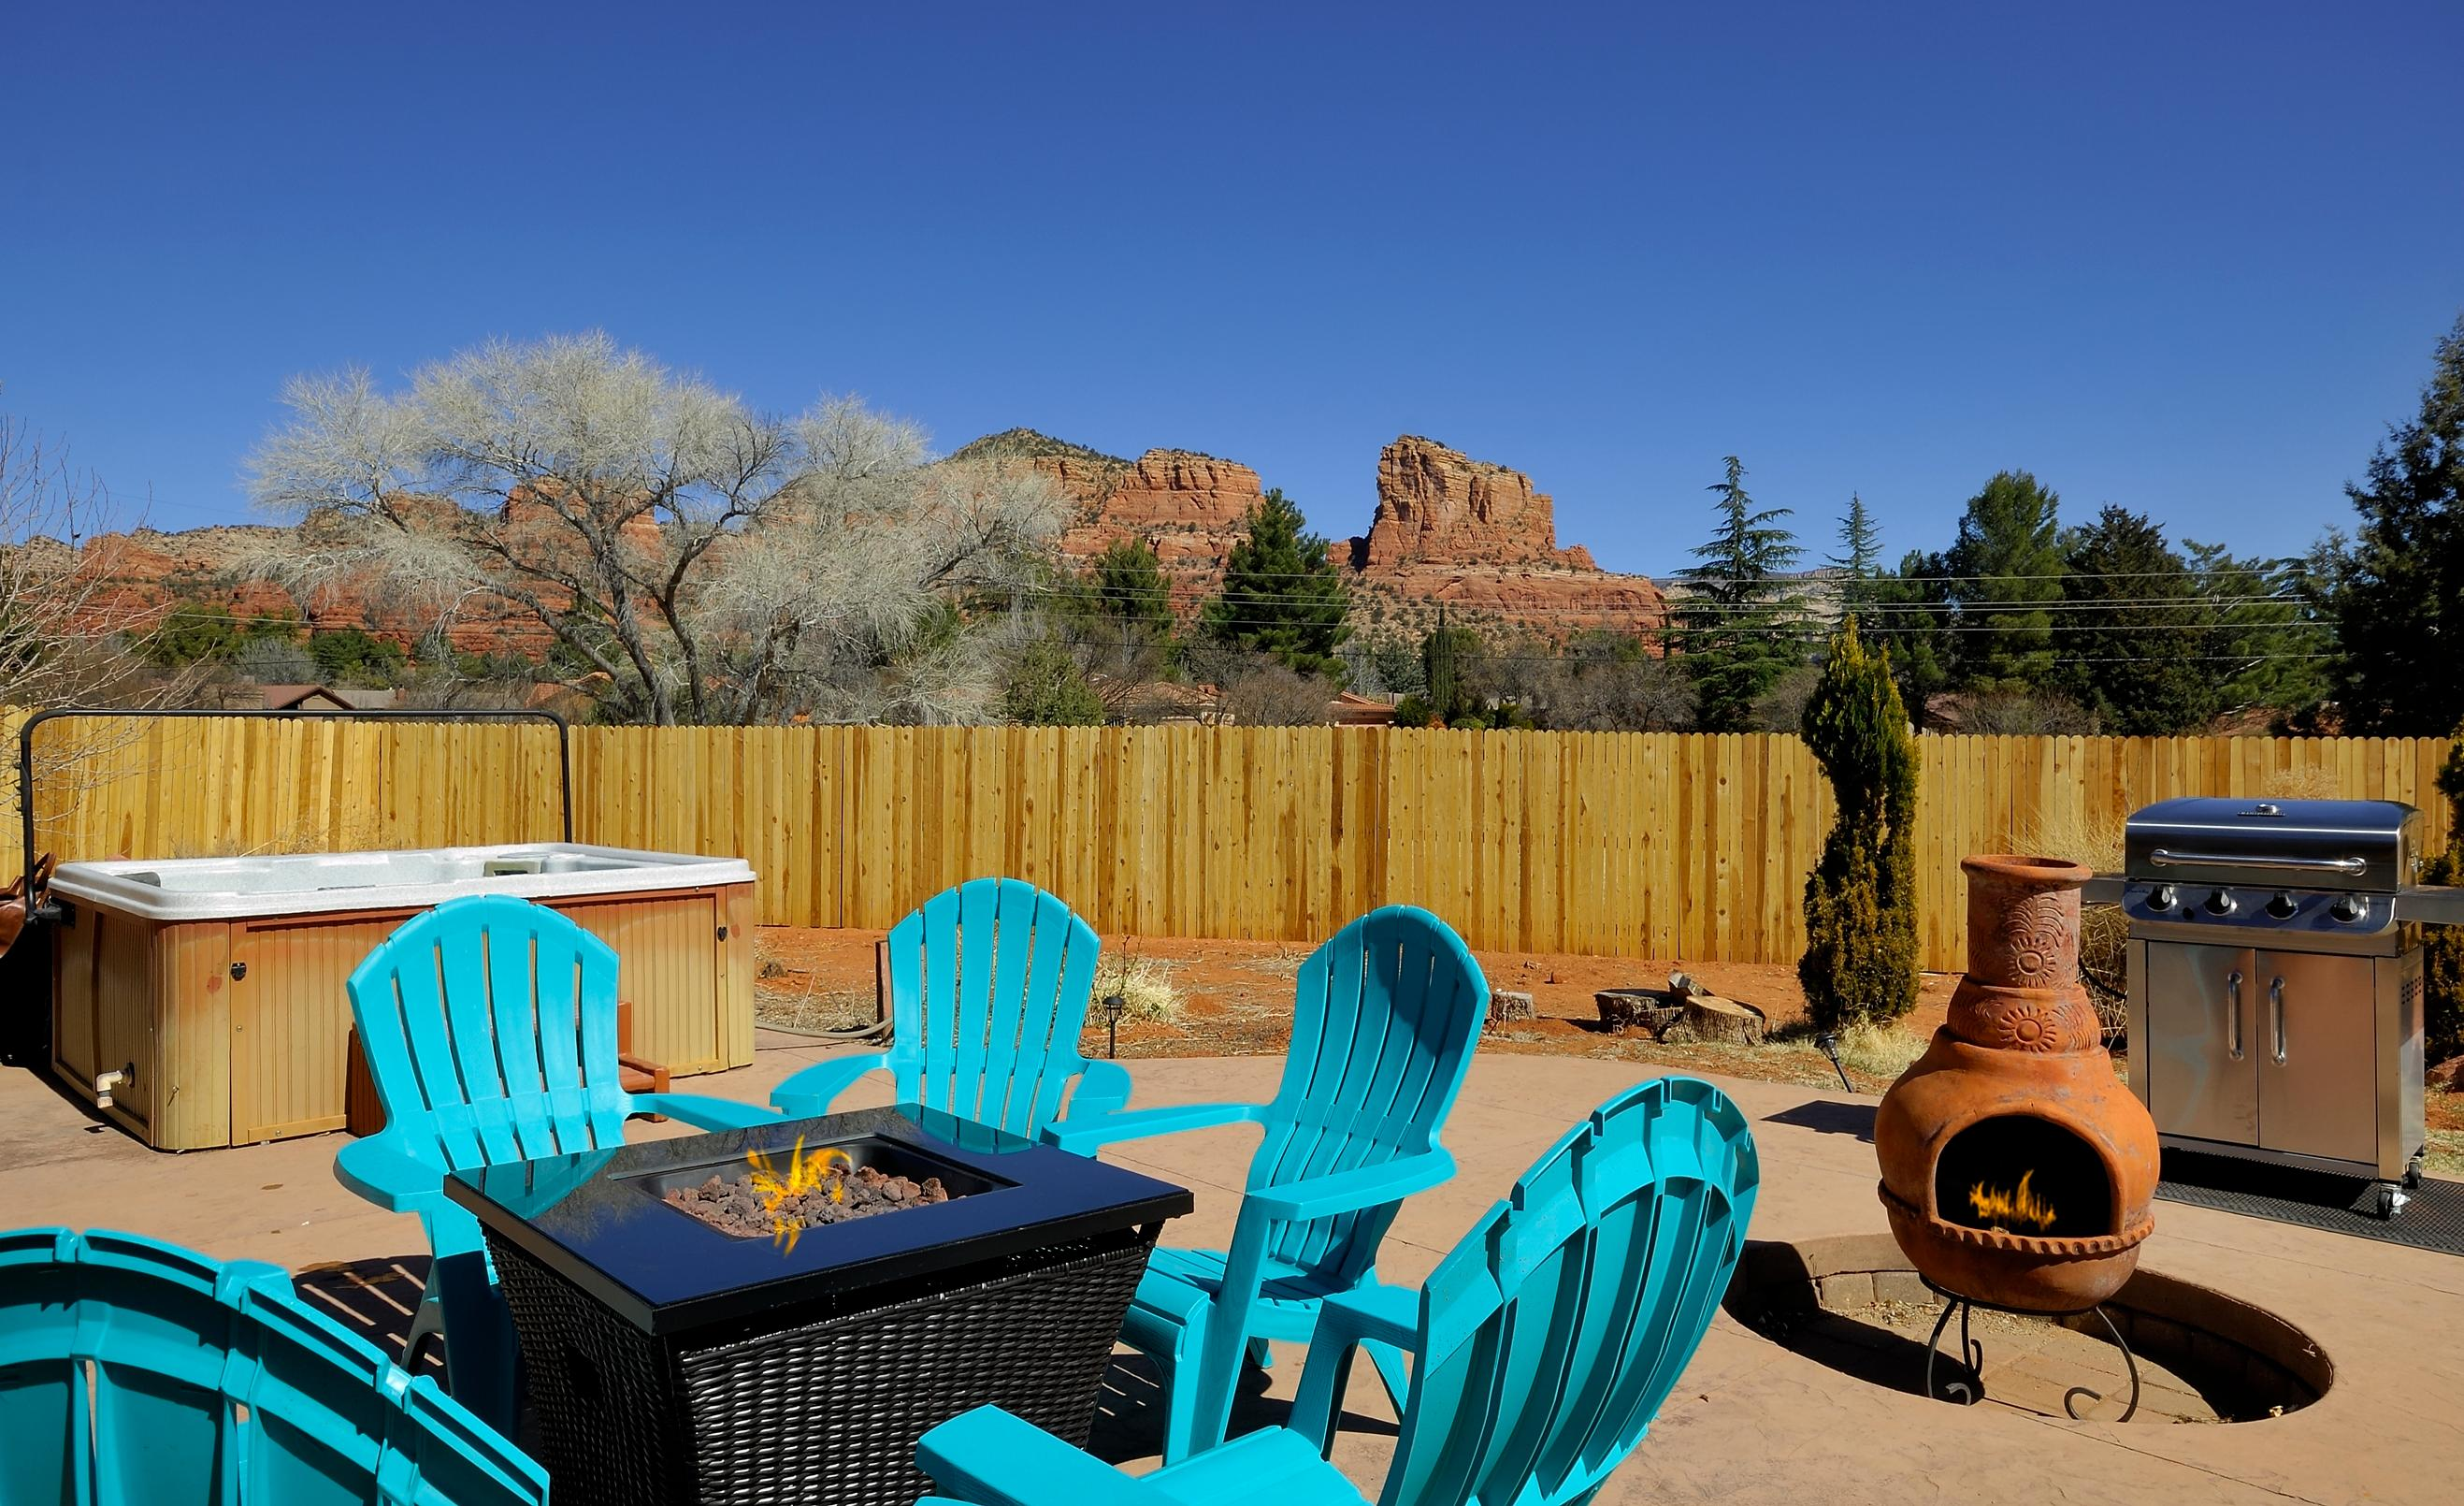 SCENIC SEDONA with SPA, POOL TABLE & MOUNTAIN VIEWS PET FRIENDLY